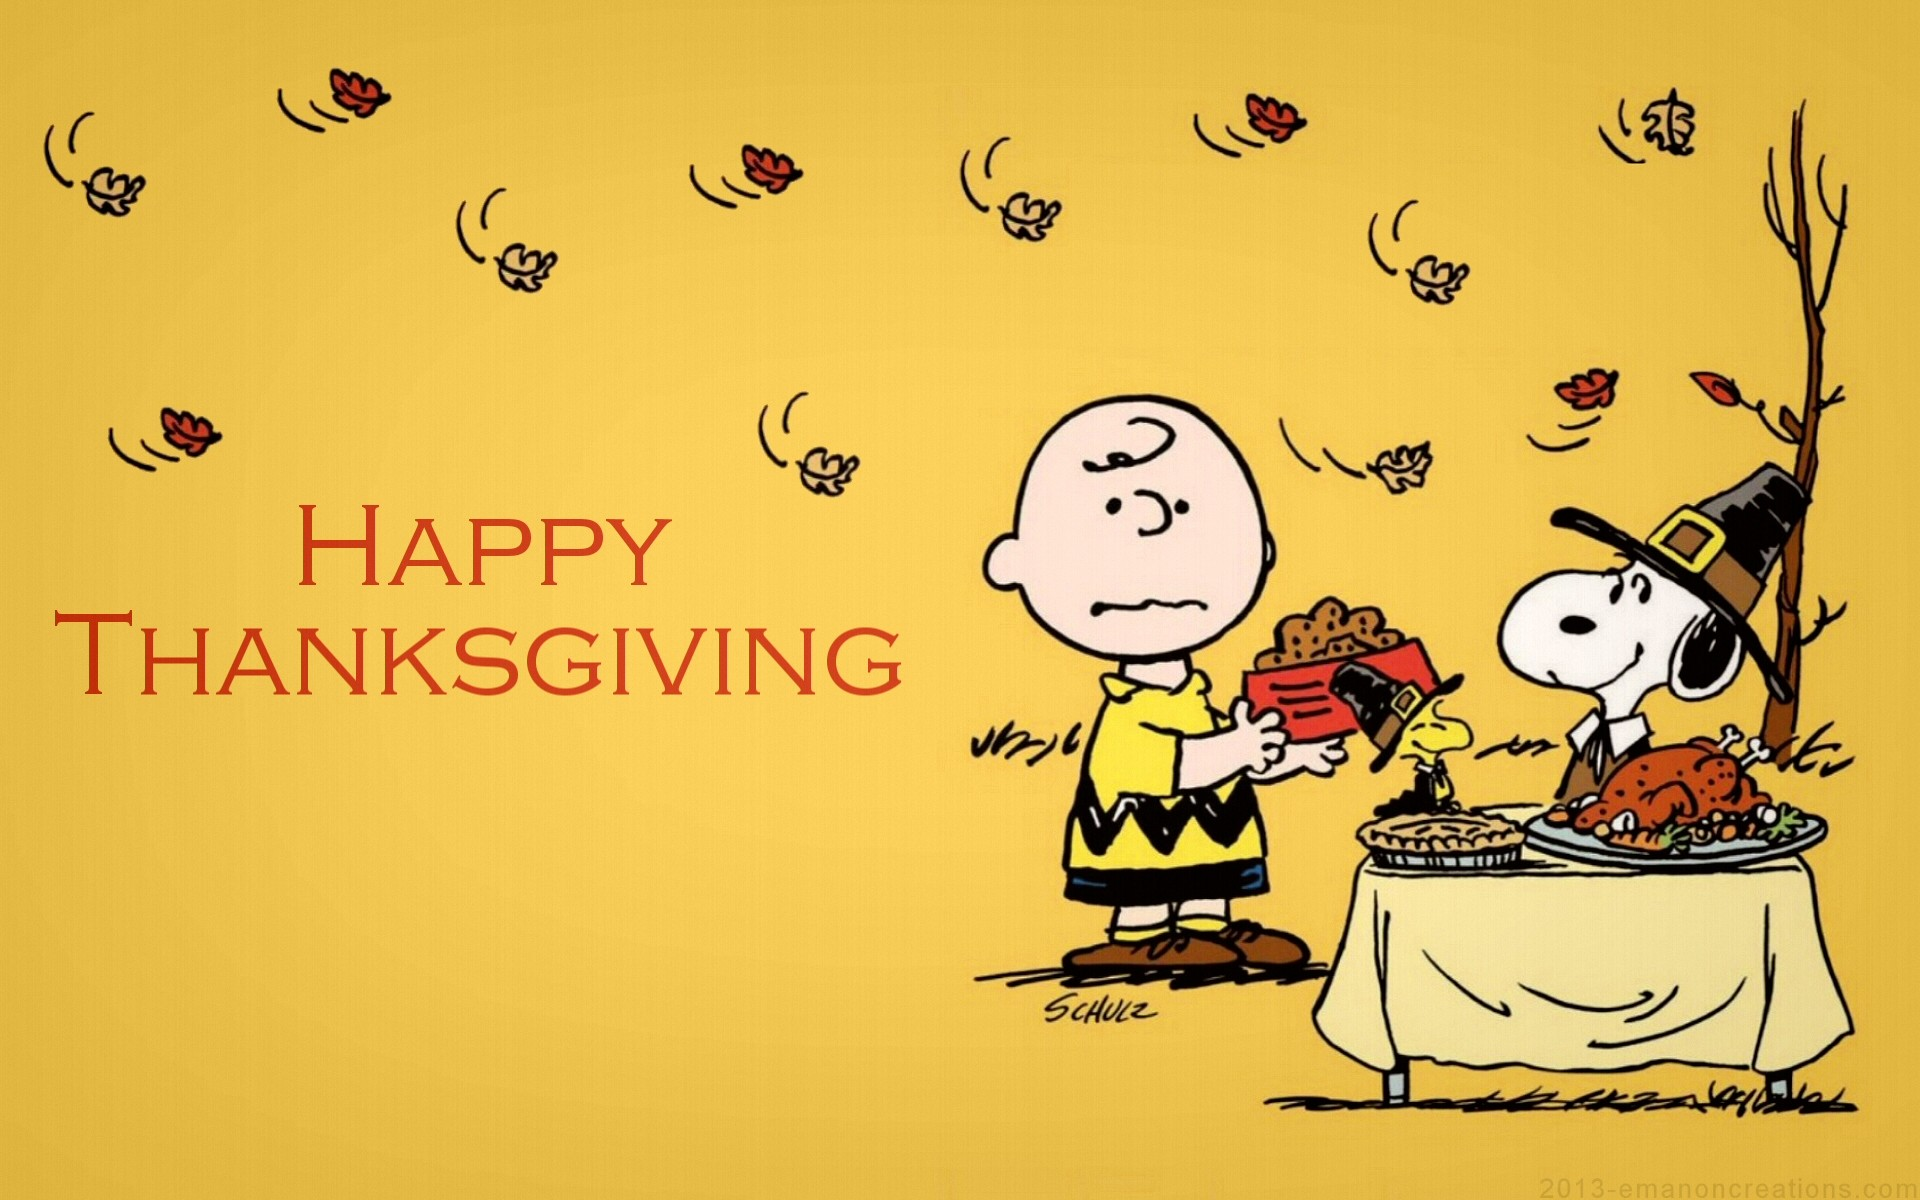 charlie brown thanksgiving desktop wallpaper (49+ images)